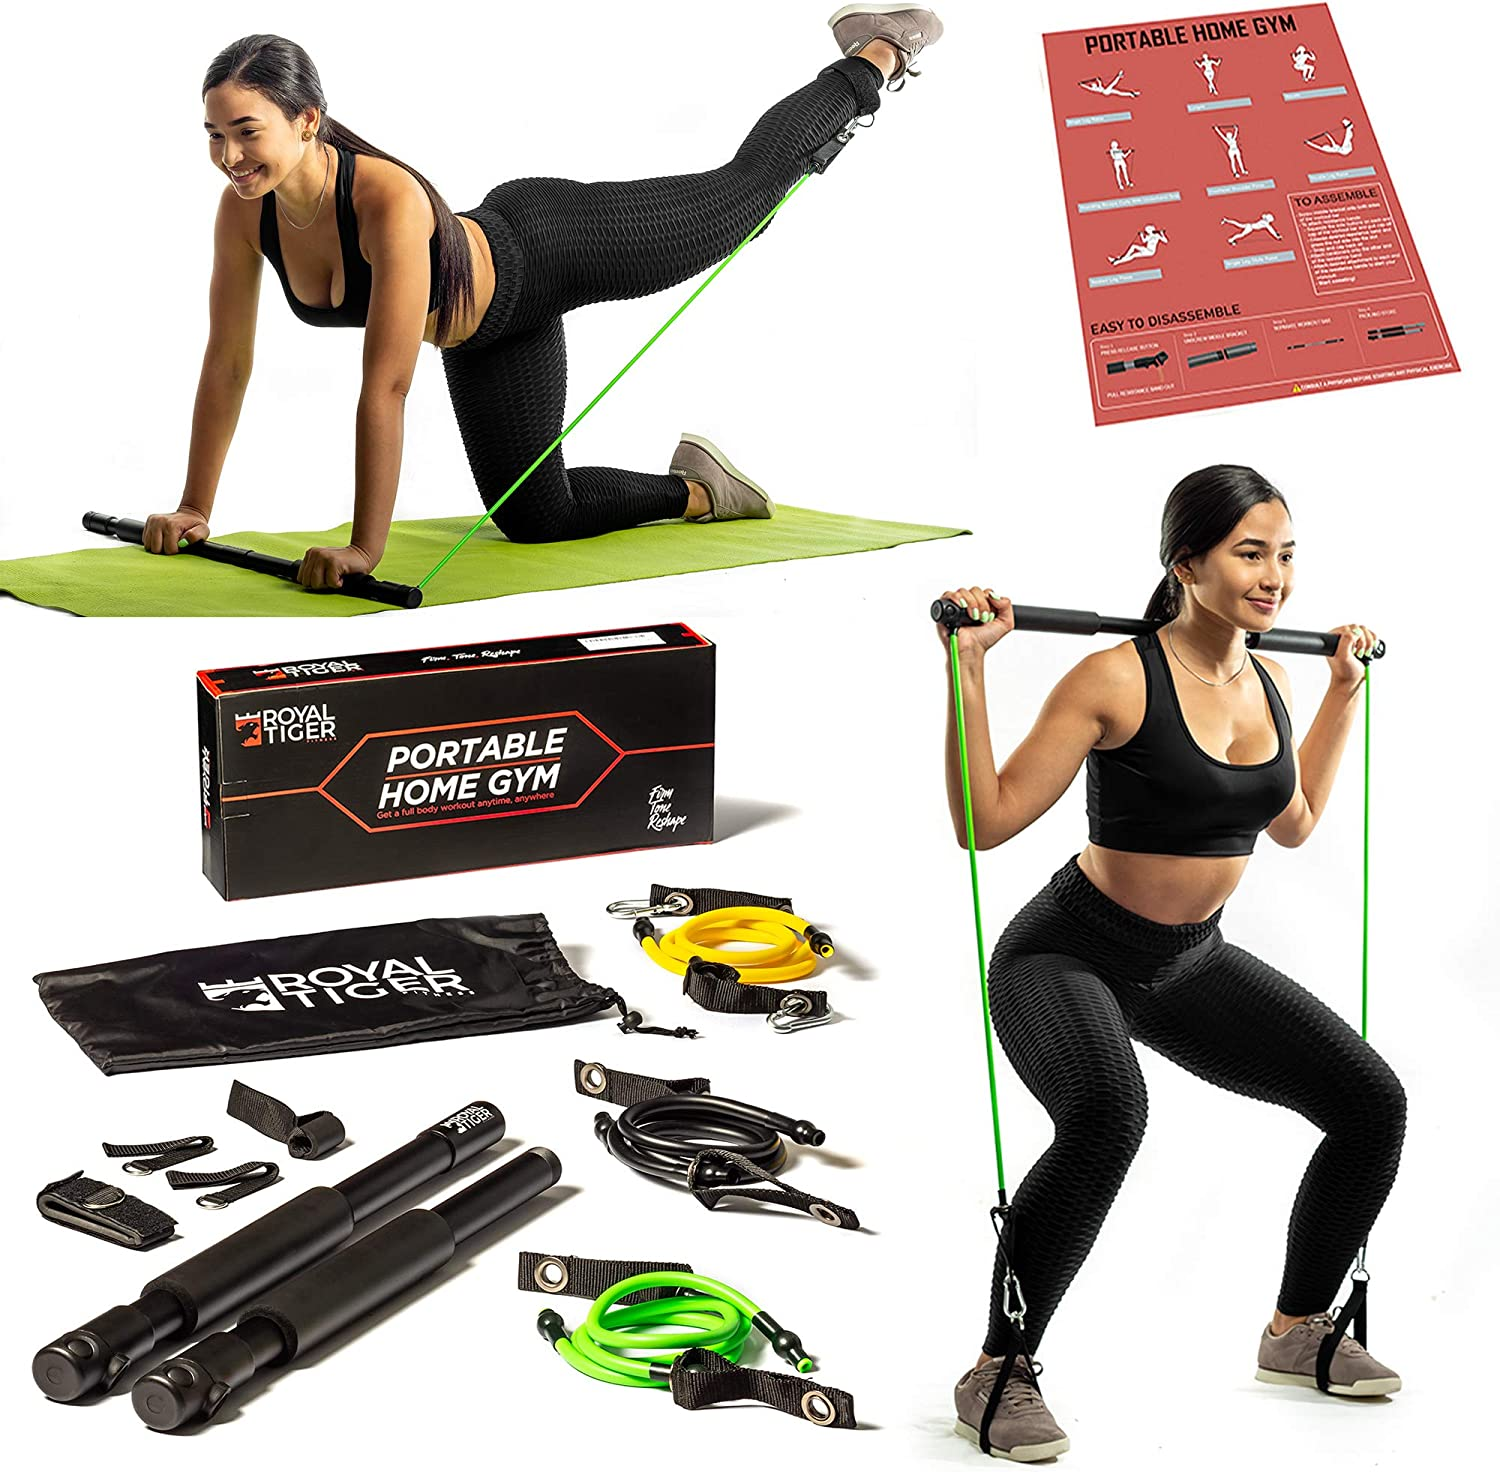 Royal Tiger Fitness Portable Home Gym - All-in-One Resistance Band + Bar Workout Equipment Kit - Total Body Exercise System - Increase Muscle, Tone Body - Easy Setup